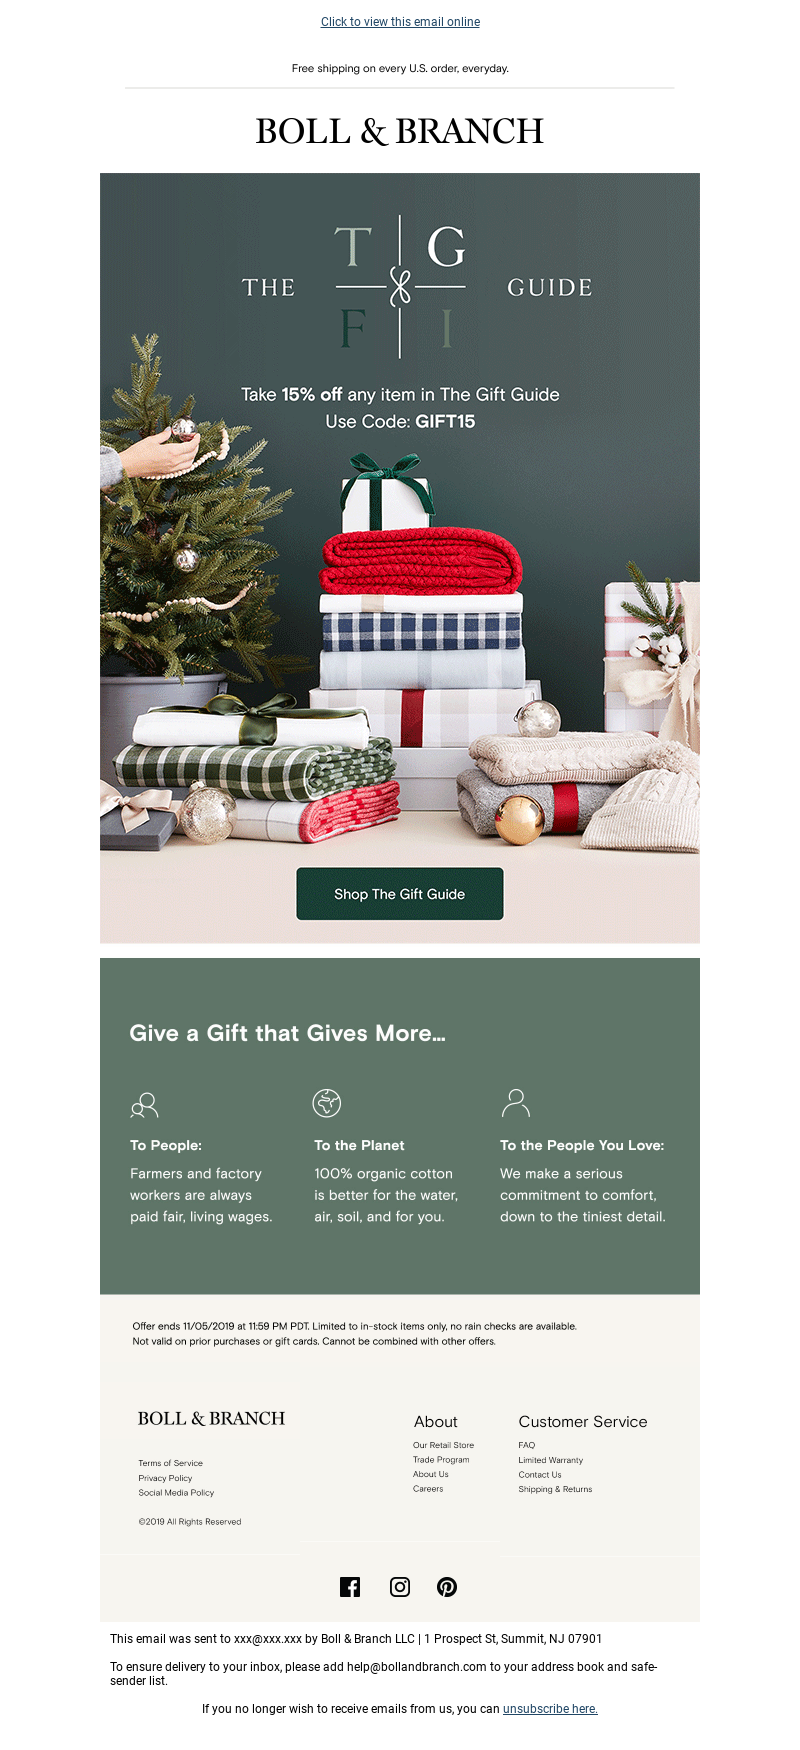 Boll & Branch - 15% Off Every 🎁 Single 🎁 Gift 🎁!